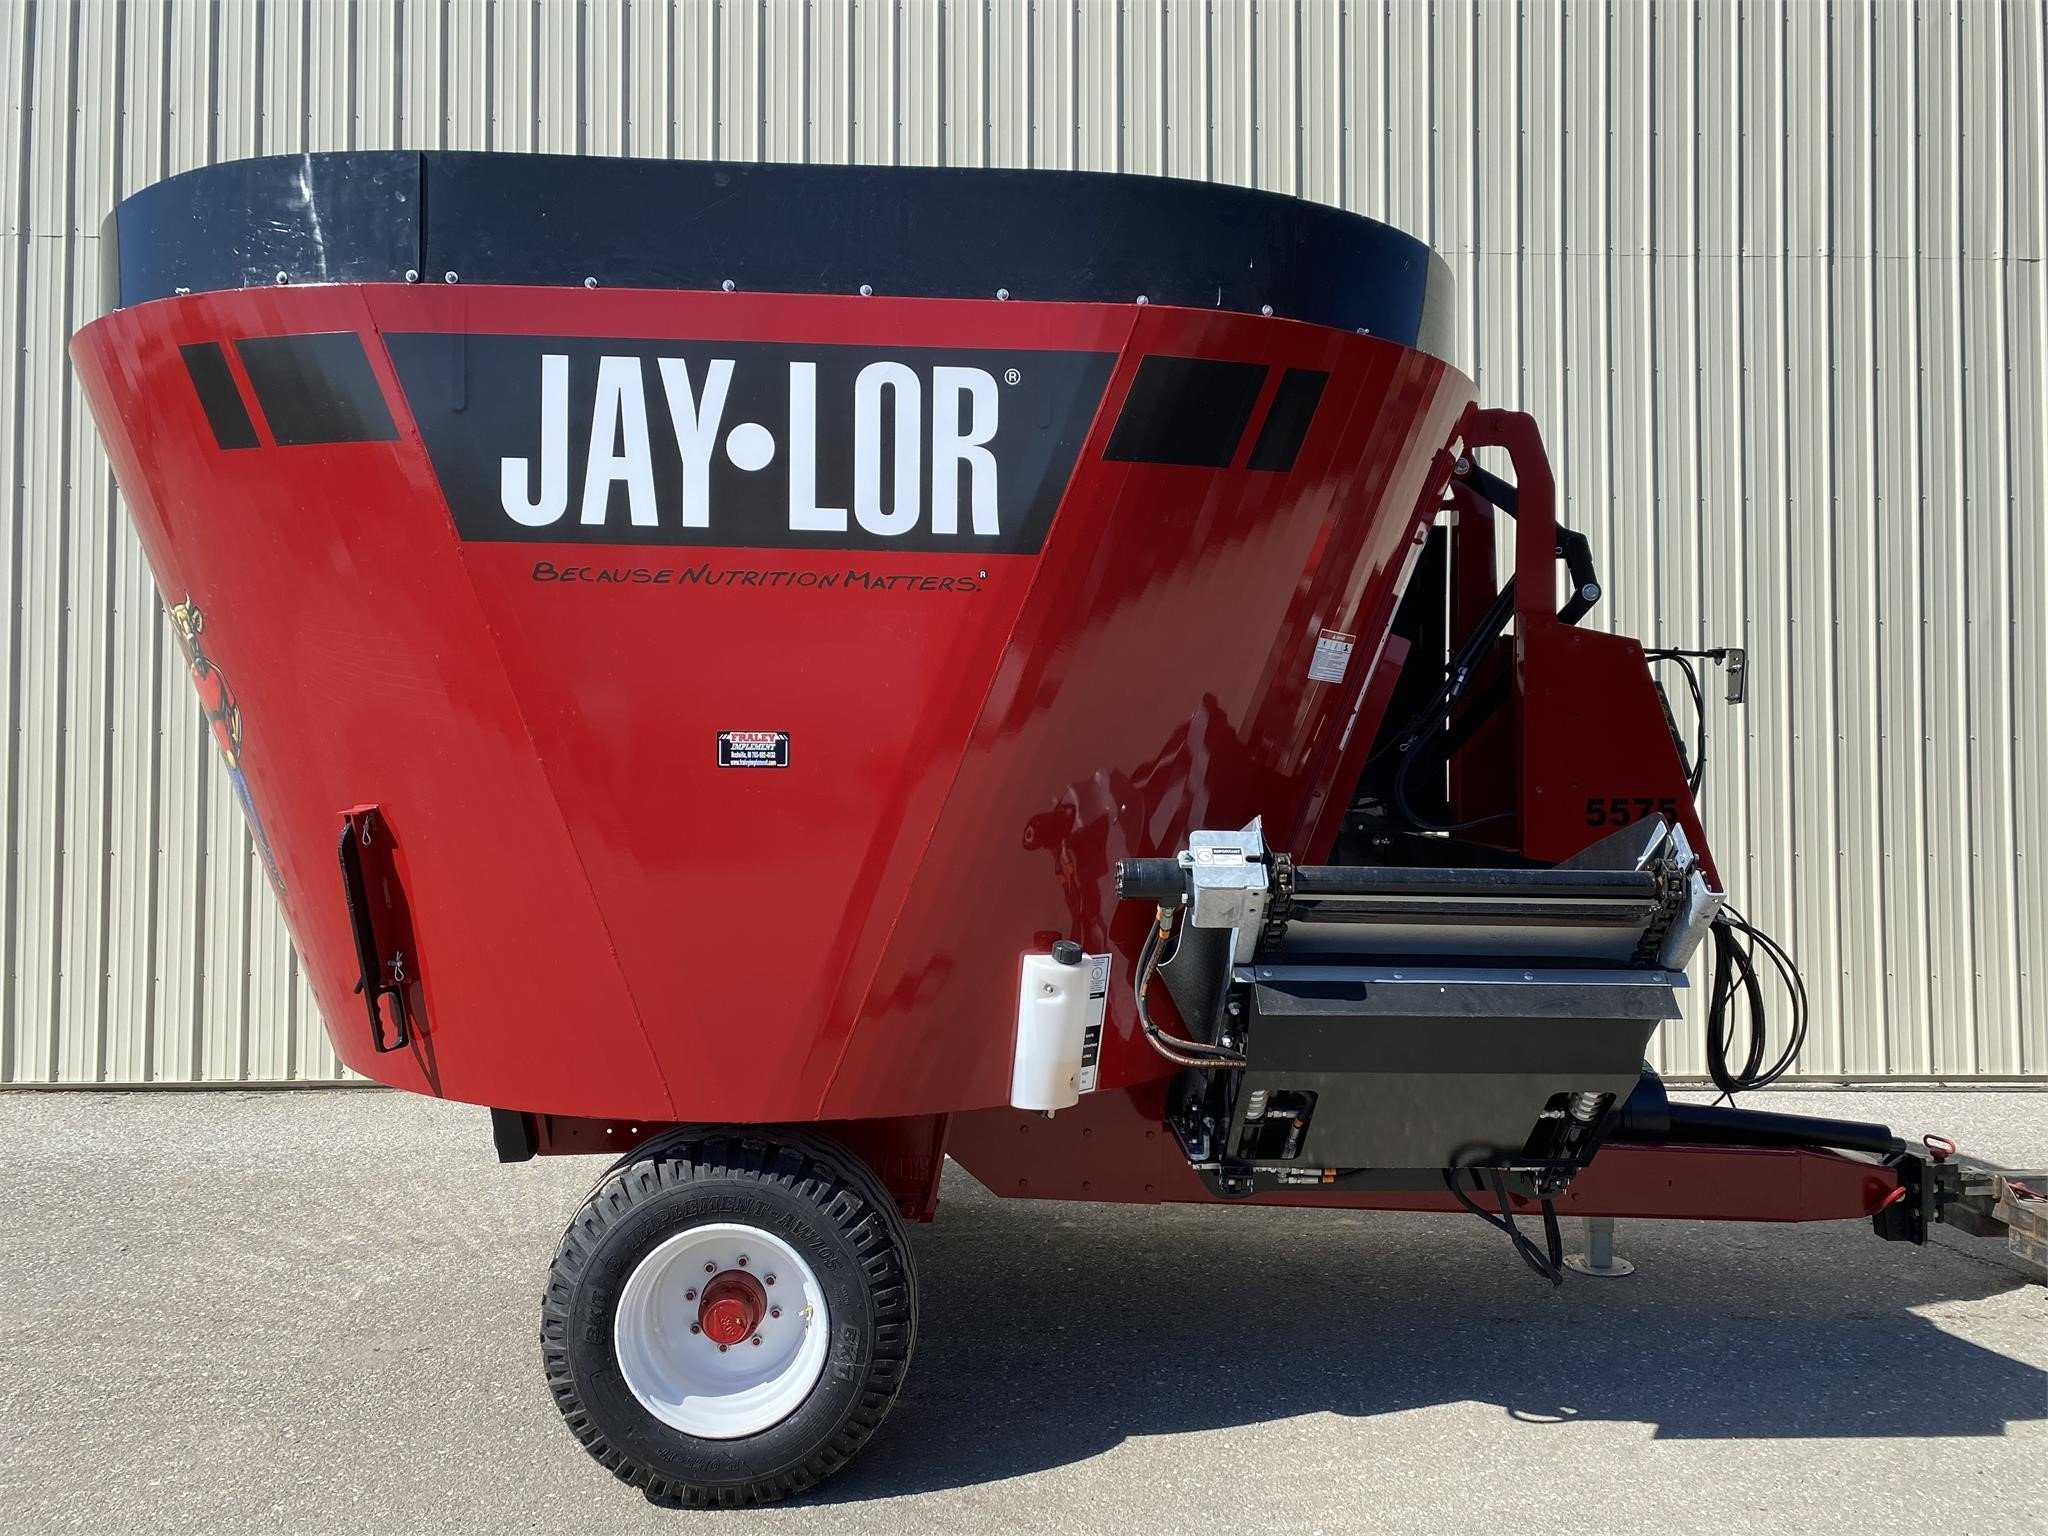 2021 Jay Lor 5575 Grinders and Mixer